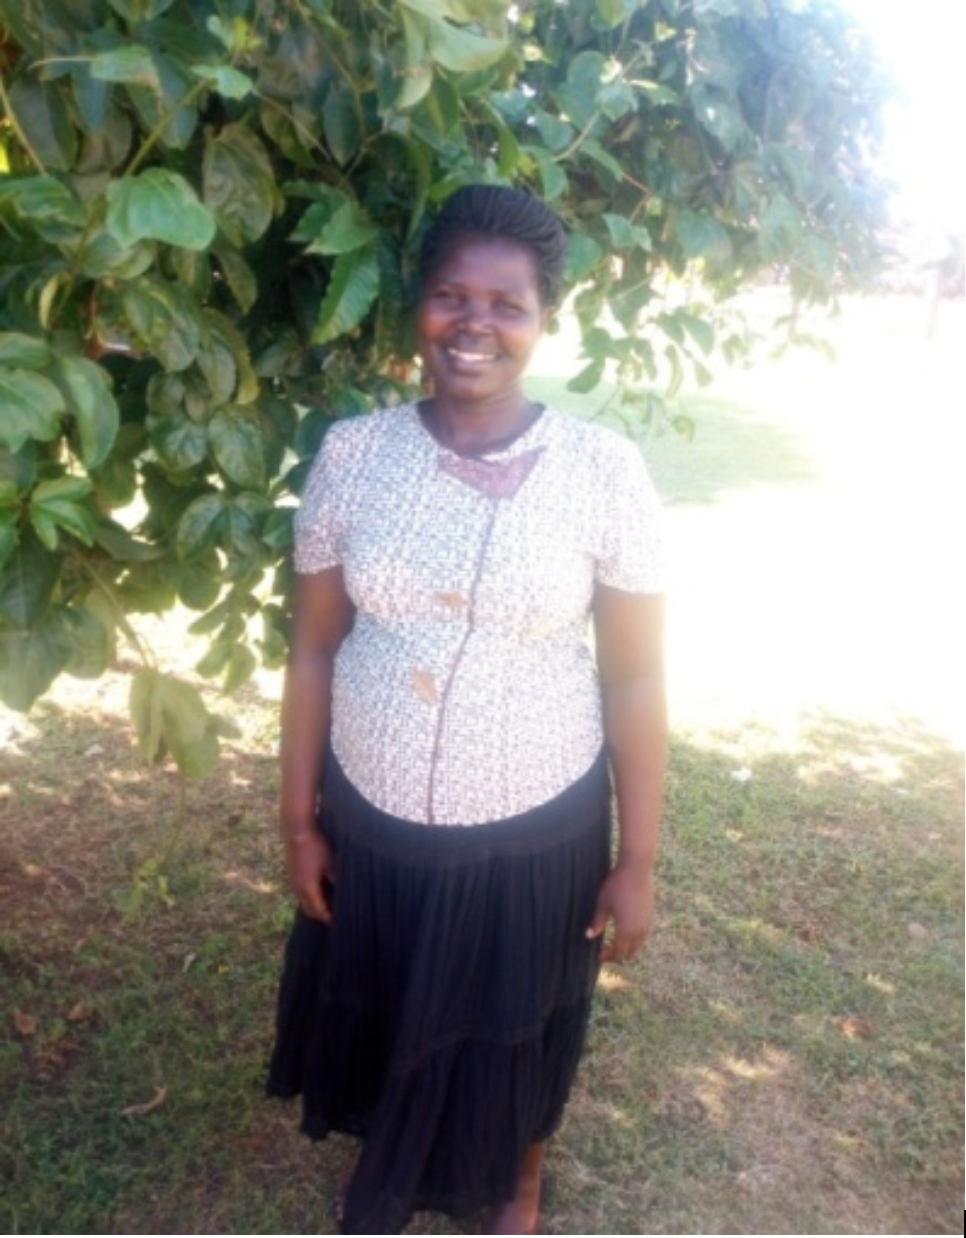 Alanyo Grace Fay  Alanyo Grace Fay is my name, 34 years old, an Acholi by tribe and a Ugandan. Attained a bachelor degree in business administration from Gulu University and currently working with Maple Micro development as a Field officer in Lira branch, Northern region.